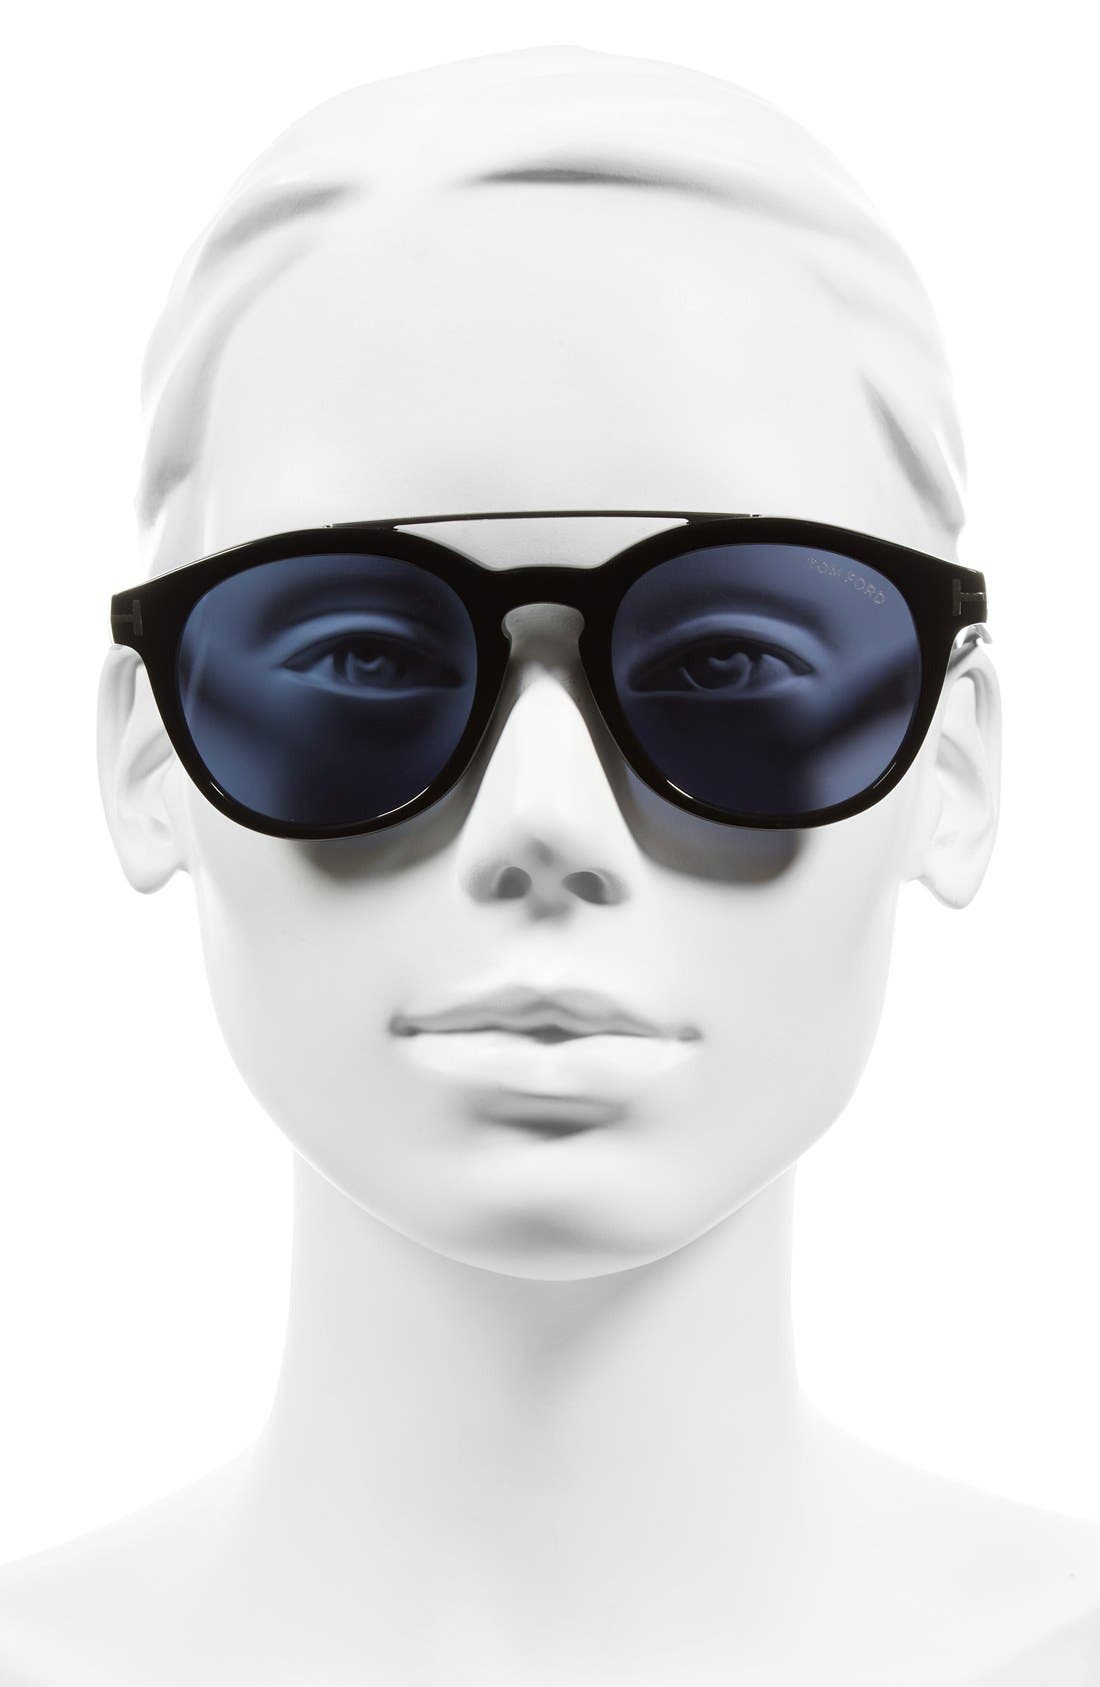 Newman 53mm Sunglasses,                             Alternate thumbnail 2, color,                             Black/ Rhodium/ Blue